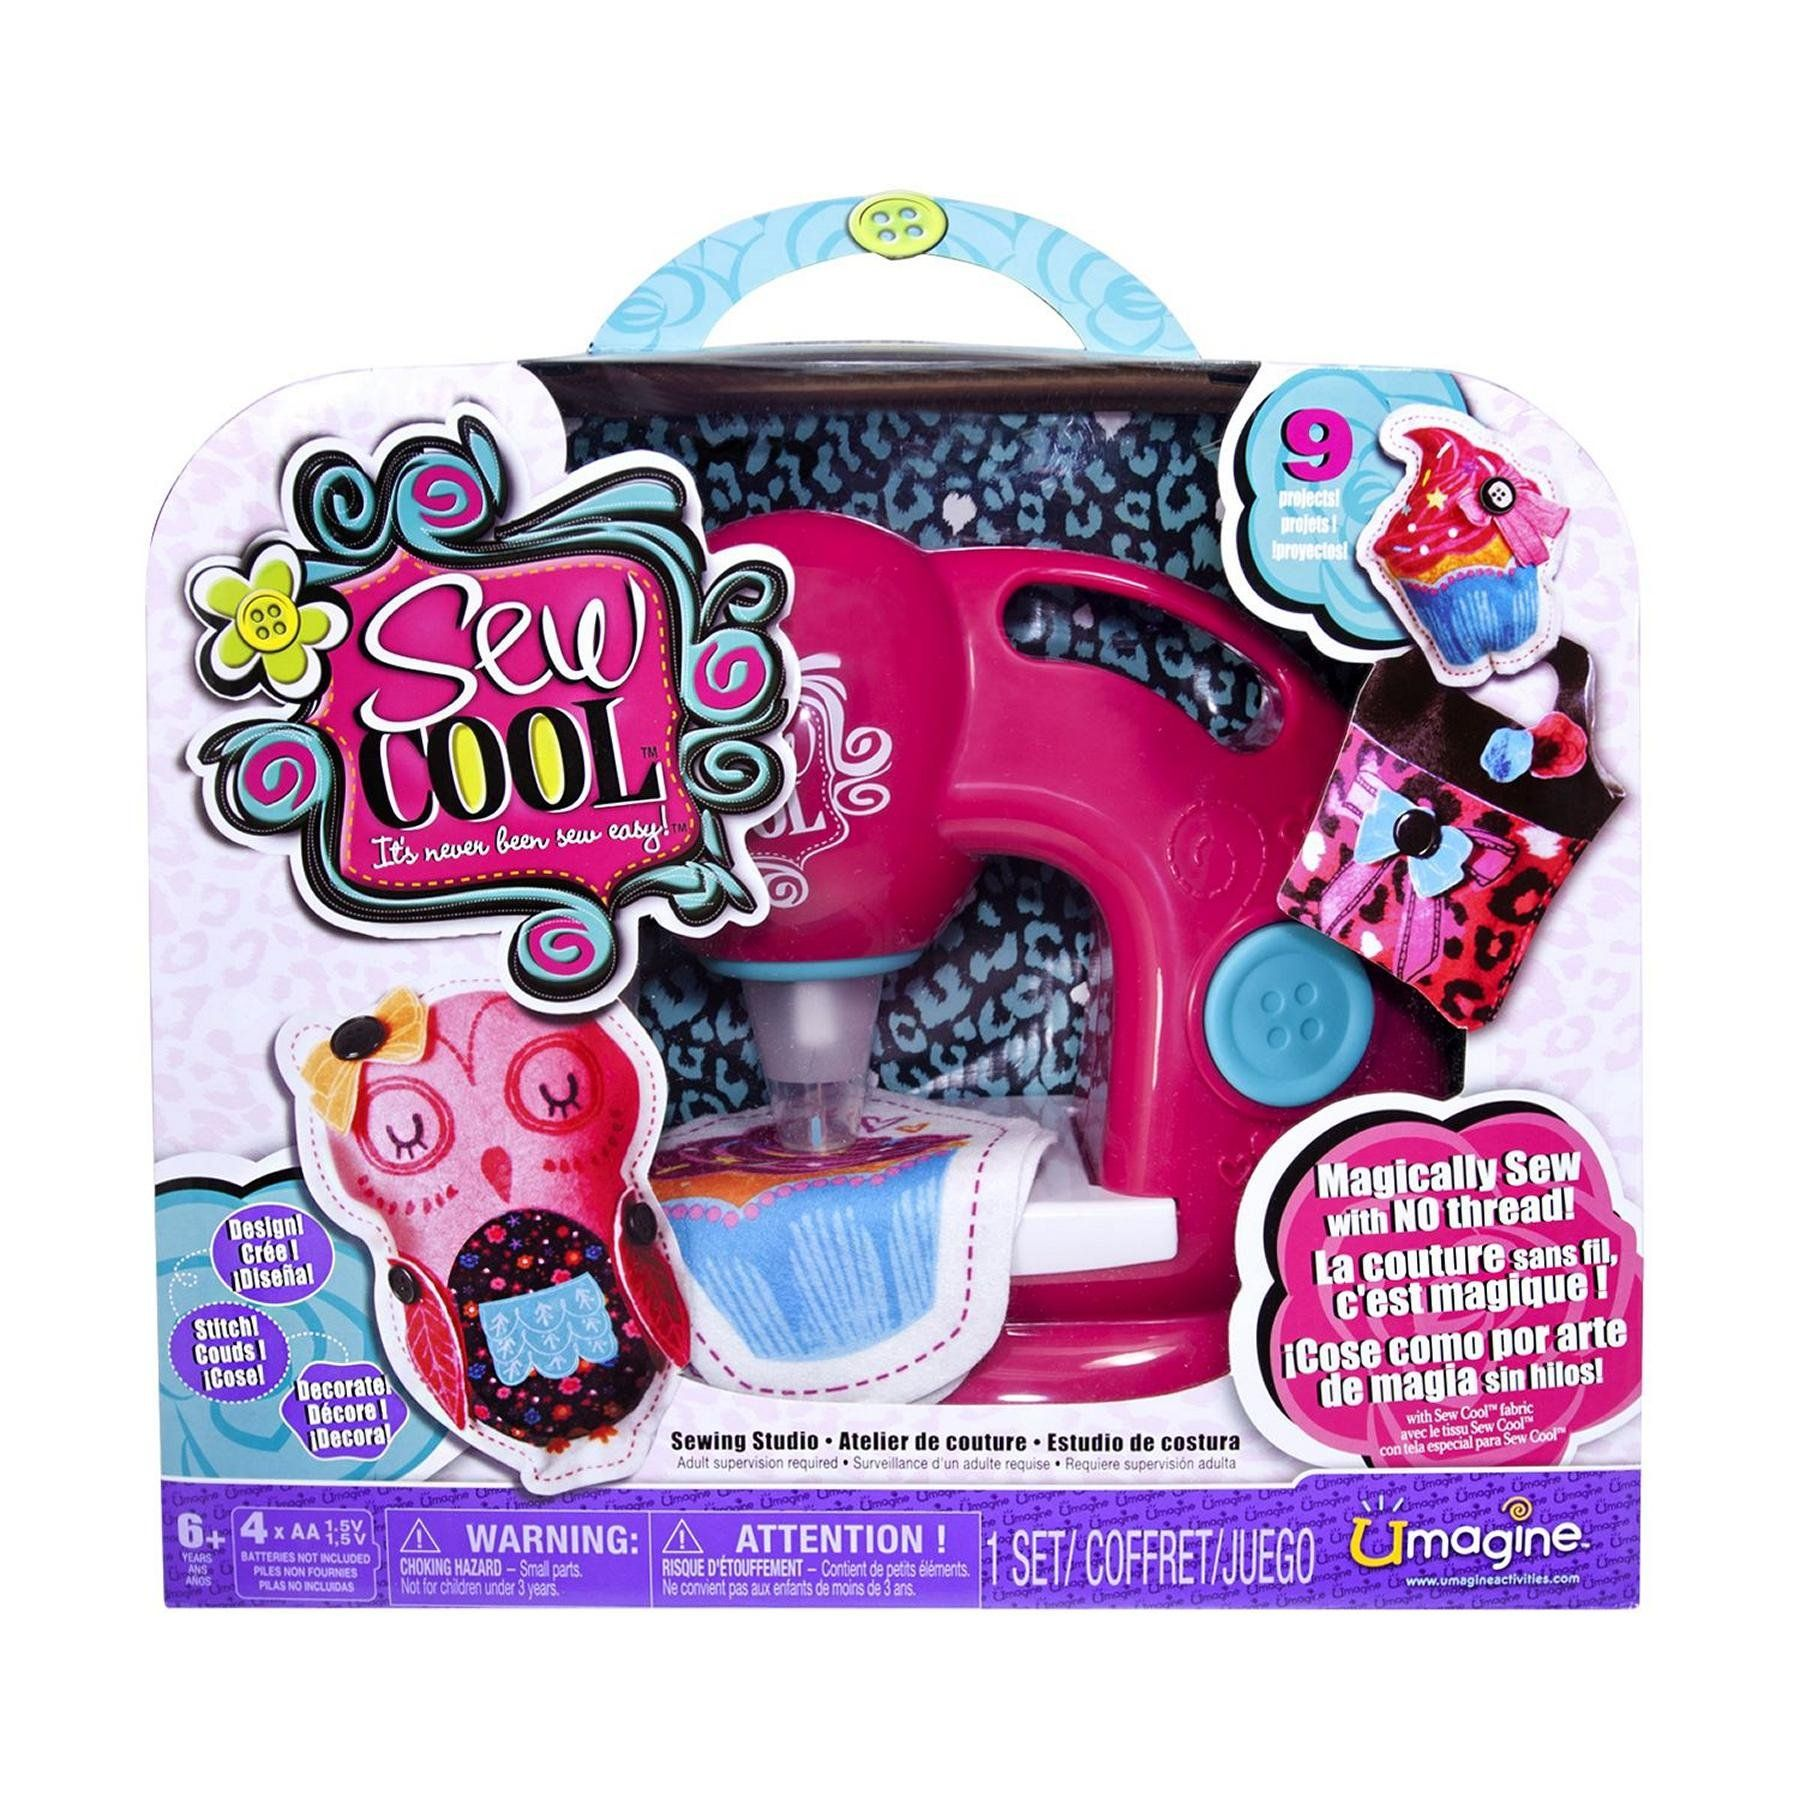 Best Toys Gift Ideas For 9 Year Old Girls In 2018: 25 Spectacular Gift Ideas For 8 Year Old Girls That WILL